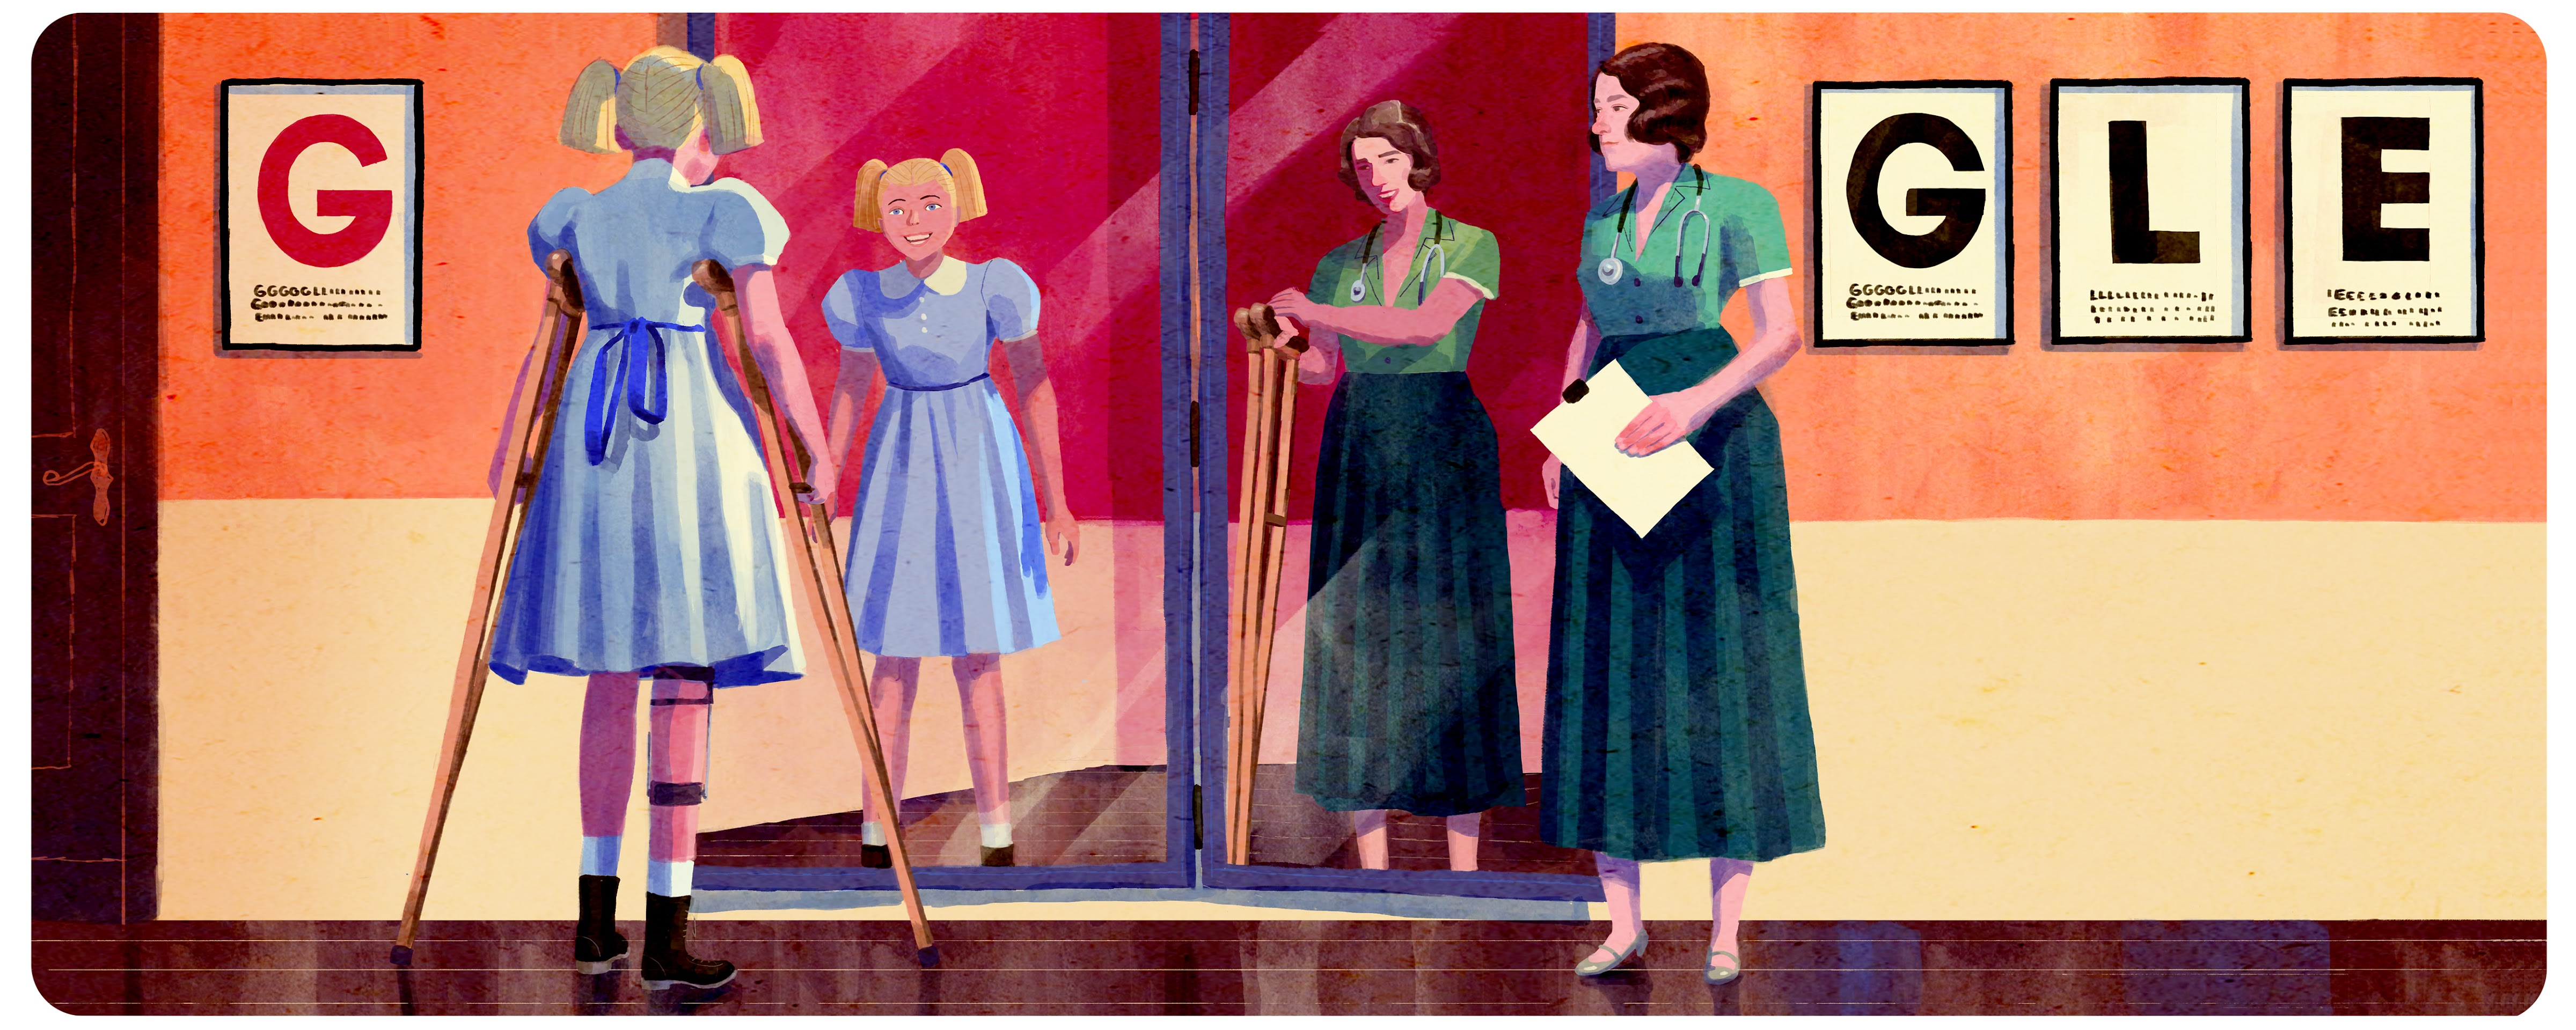 Illustrated Google Doodle for Dame Jean Macnamara's 121st birthday showing girl on crutches looking into a mirror where the crutches are invisible.